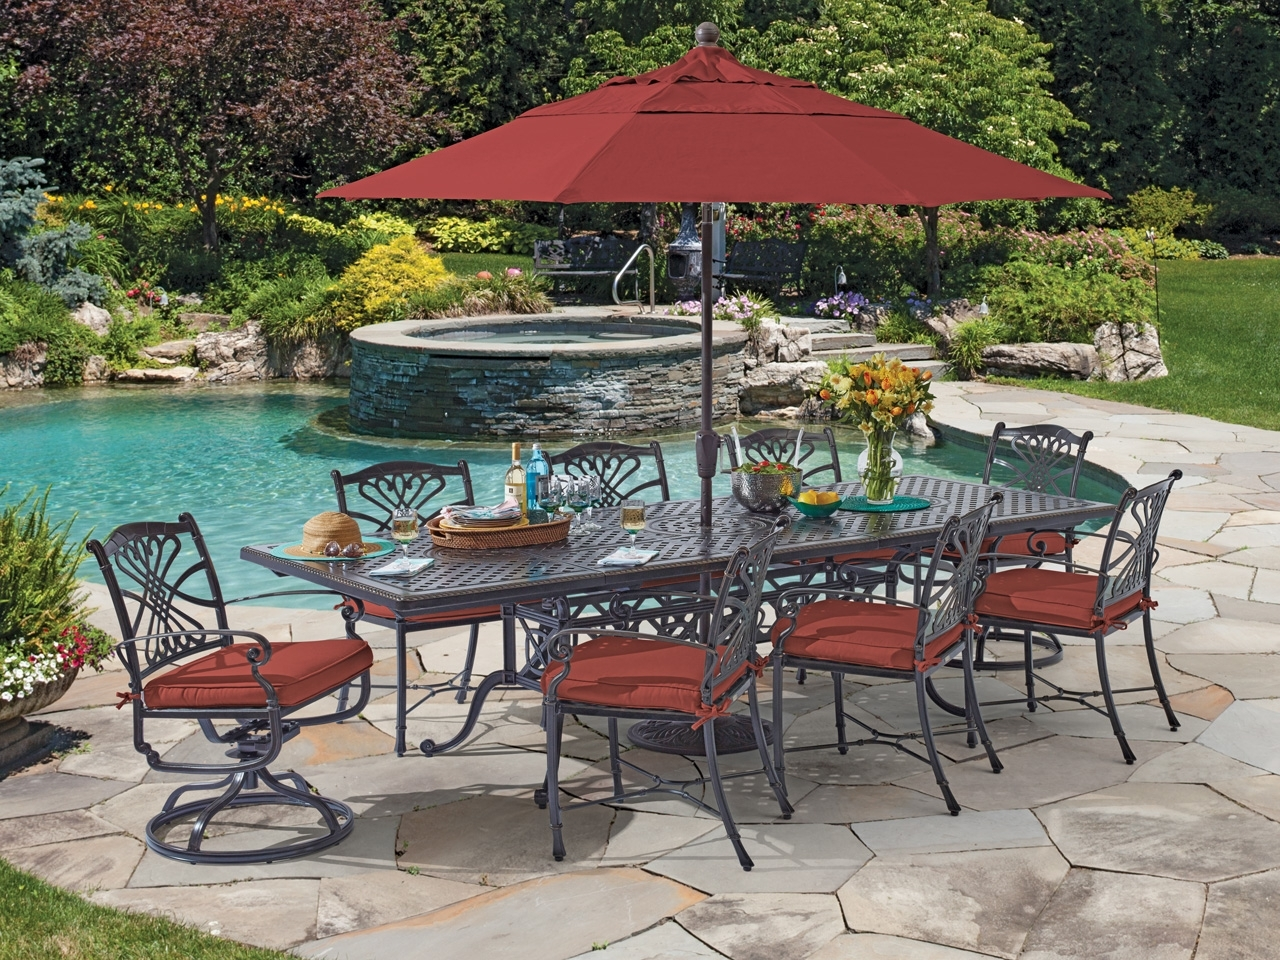 Round Patio Dining Sets With Umbrella Home Depot Sams Club Furniture Within Most Popular Sams Club Patio Umbrellas (View 12 of 20)